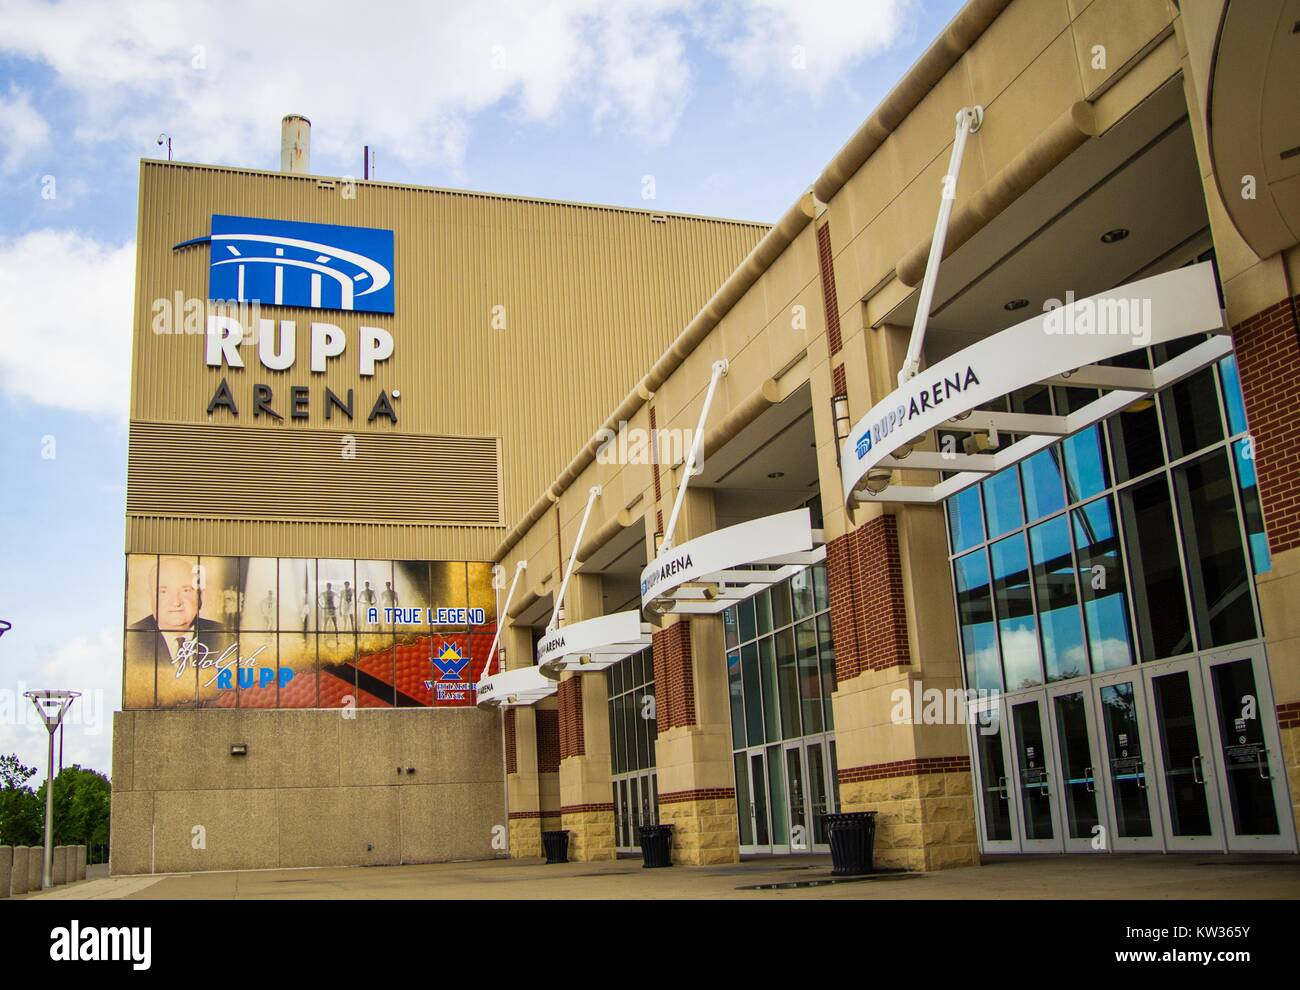 Lexington, Kentucky. USA. June 1, 2015. Rupp Arena in Lexington, Kentucky is home court of the beloved University - Stock Image